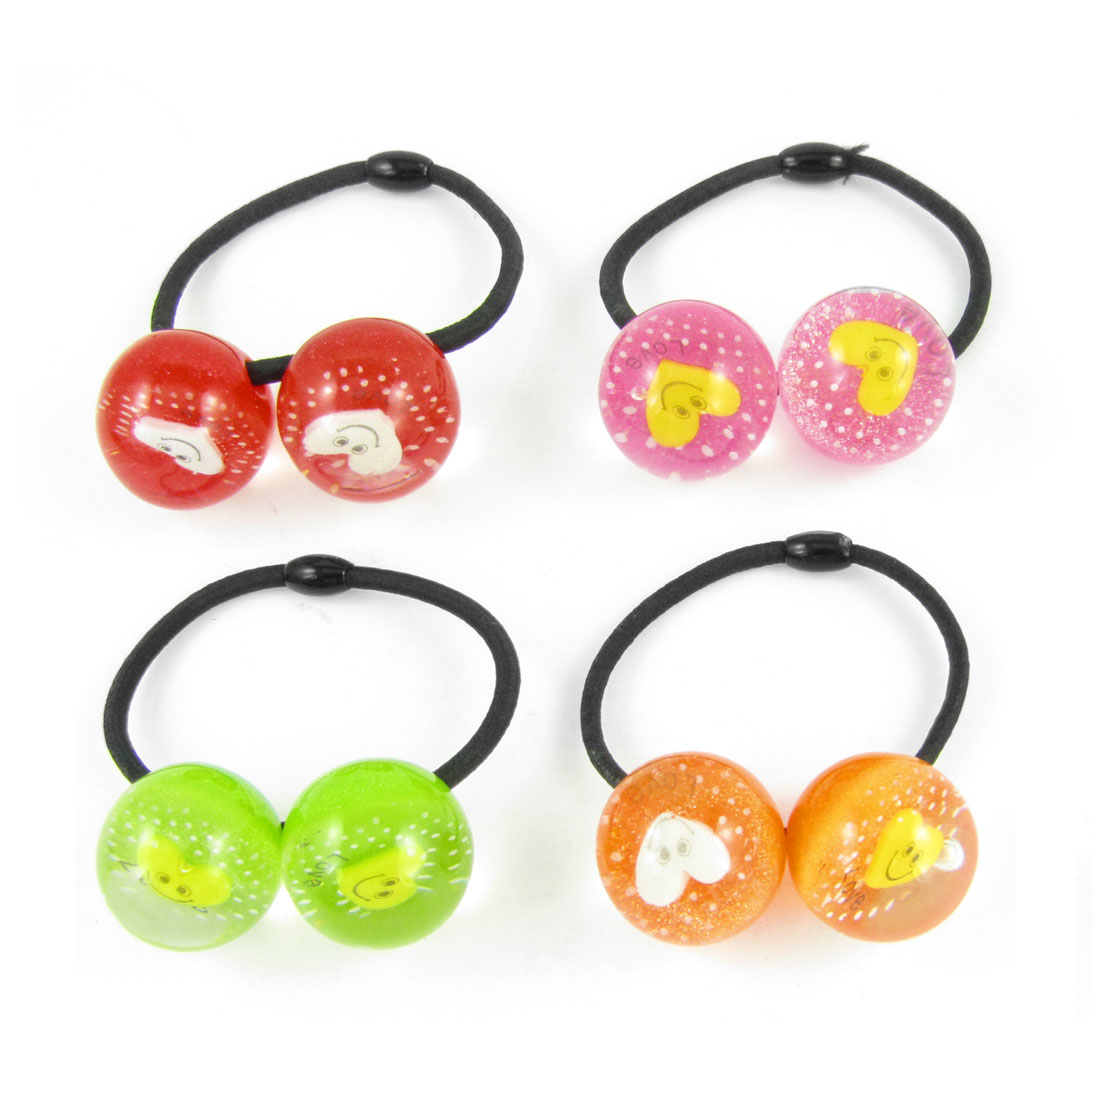 4pcs Girls Assorted Color Heart Smile Face Inlaid Beads Decor Hair Band Tie